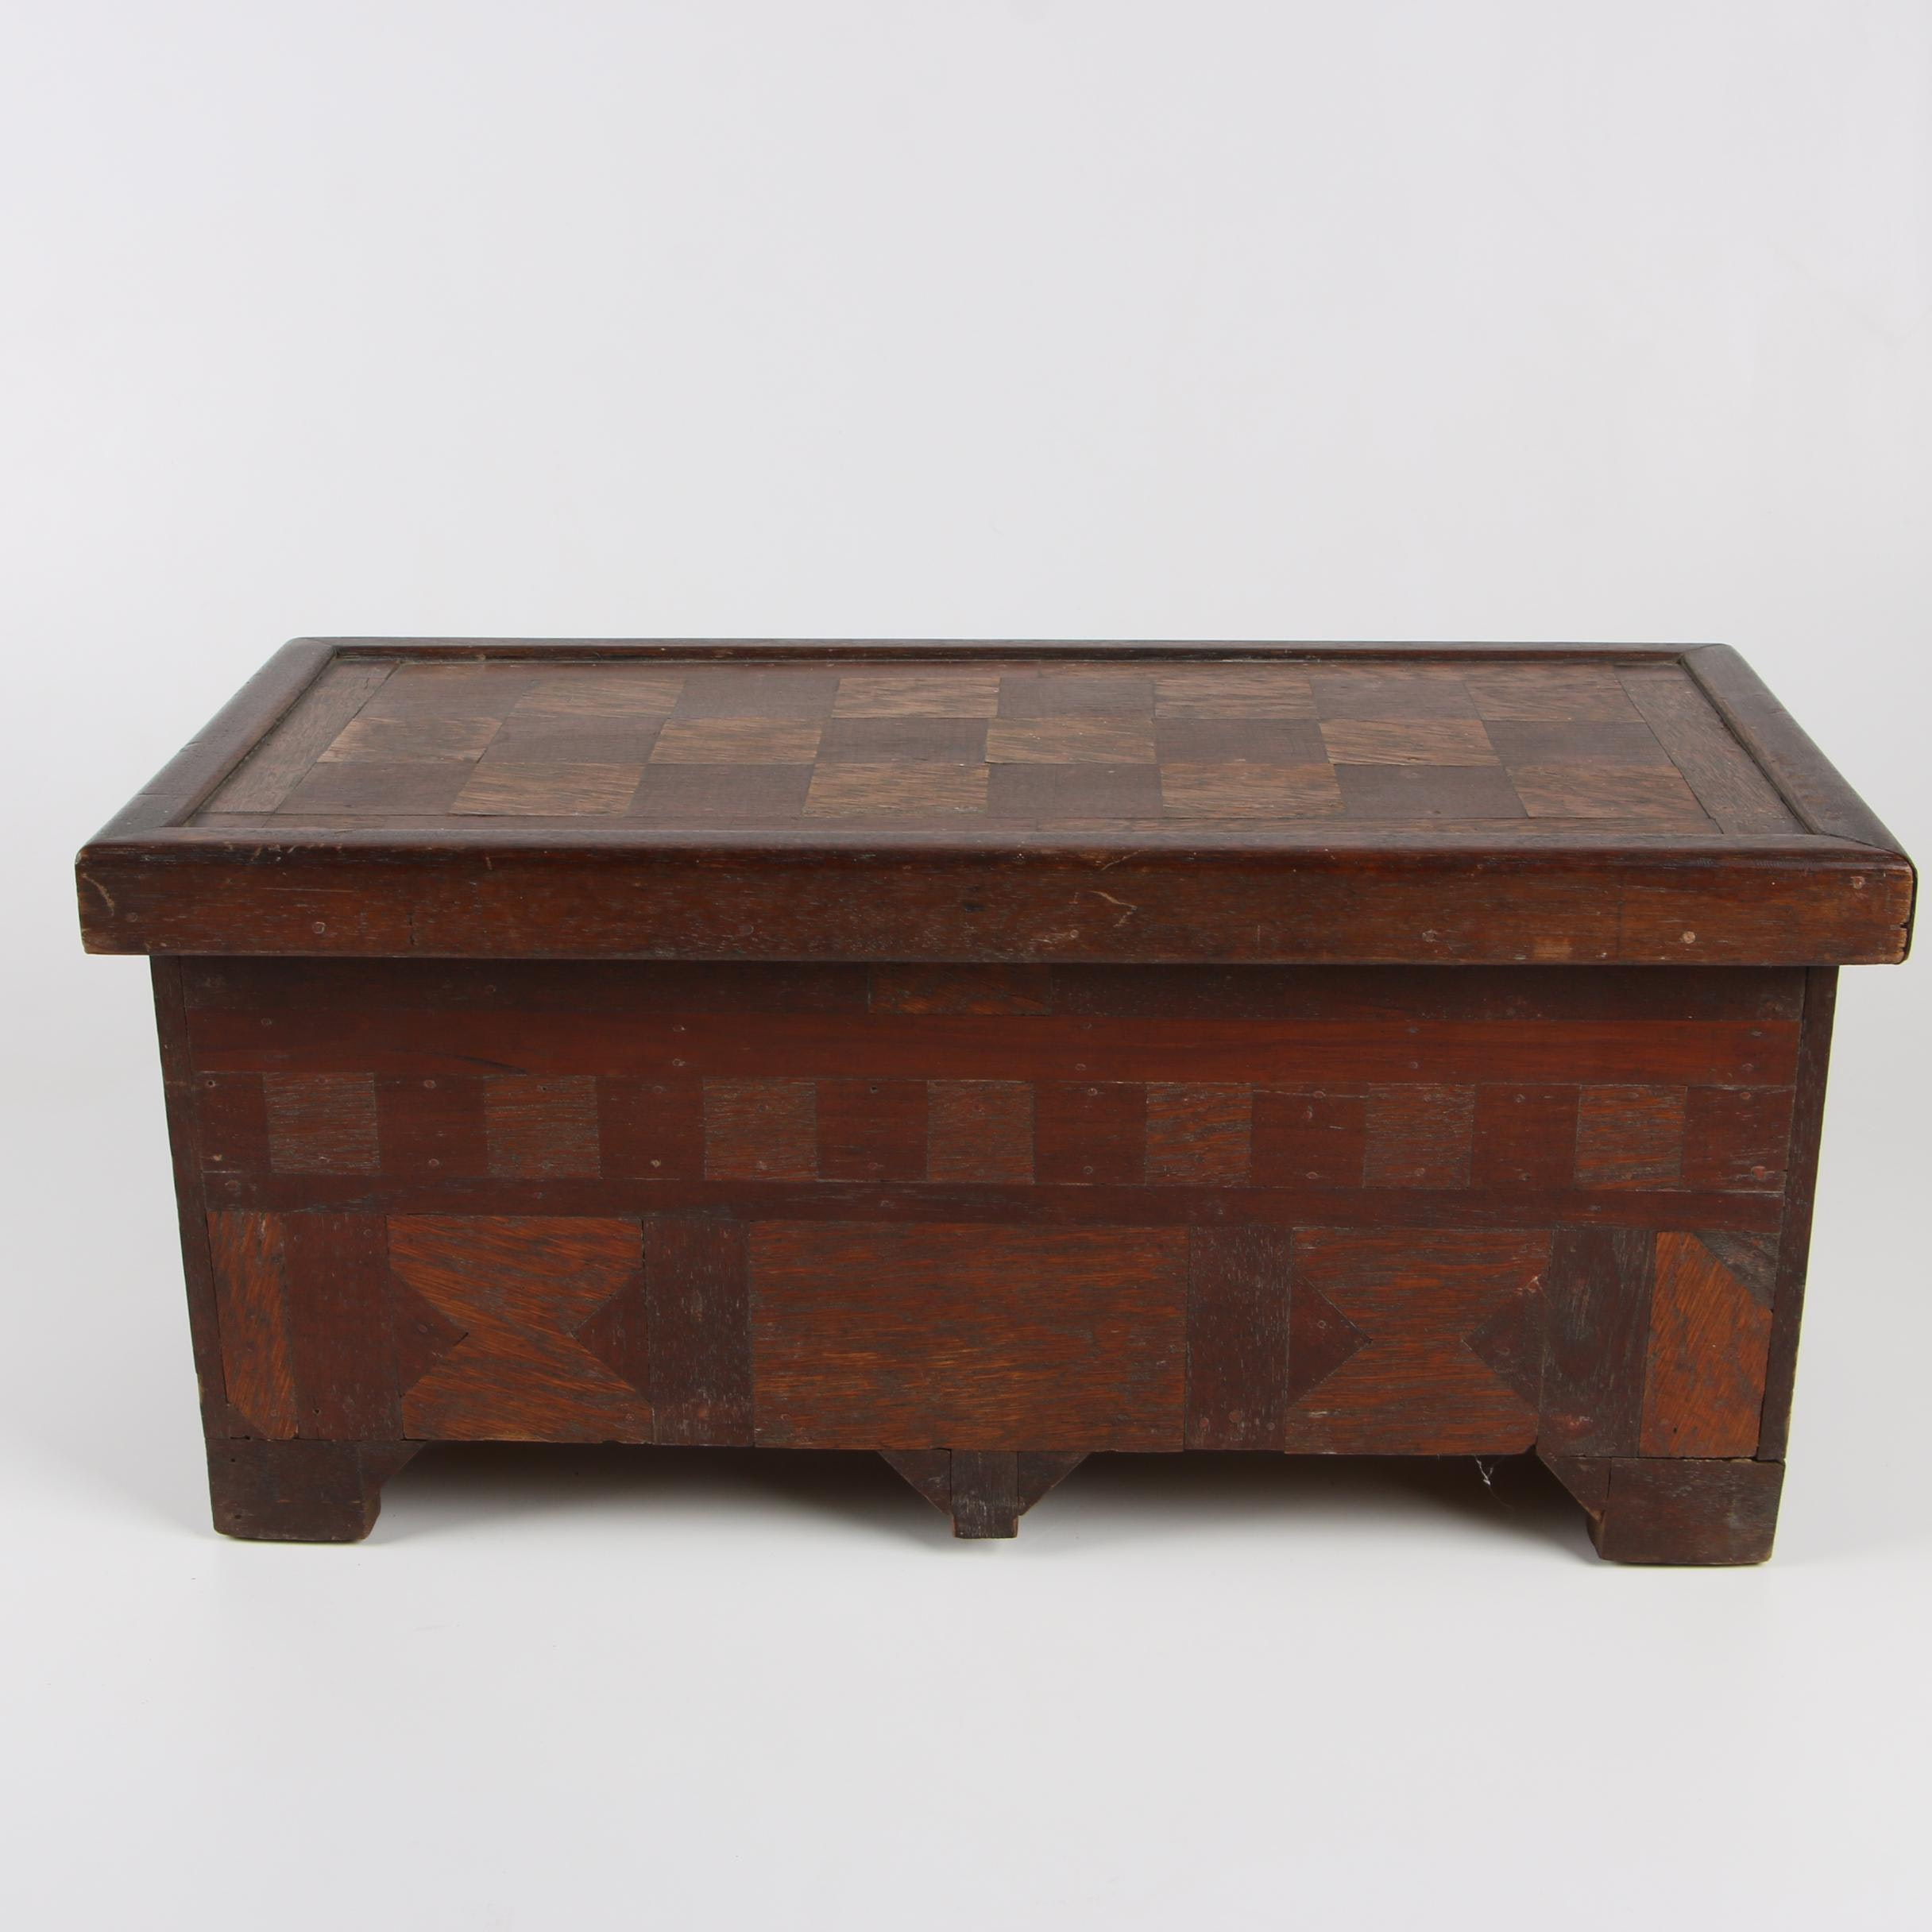 American Folk Art Oak, Walnut, and Parquetry Chest, Early 20th Century